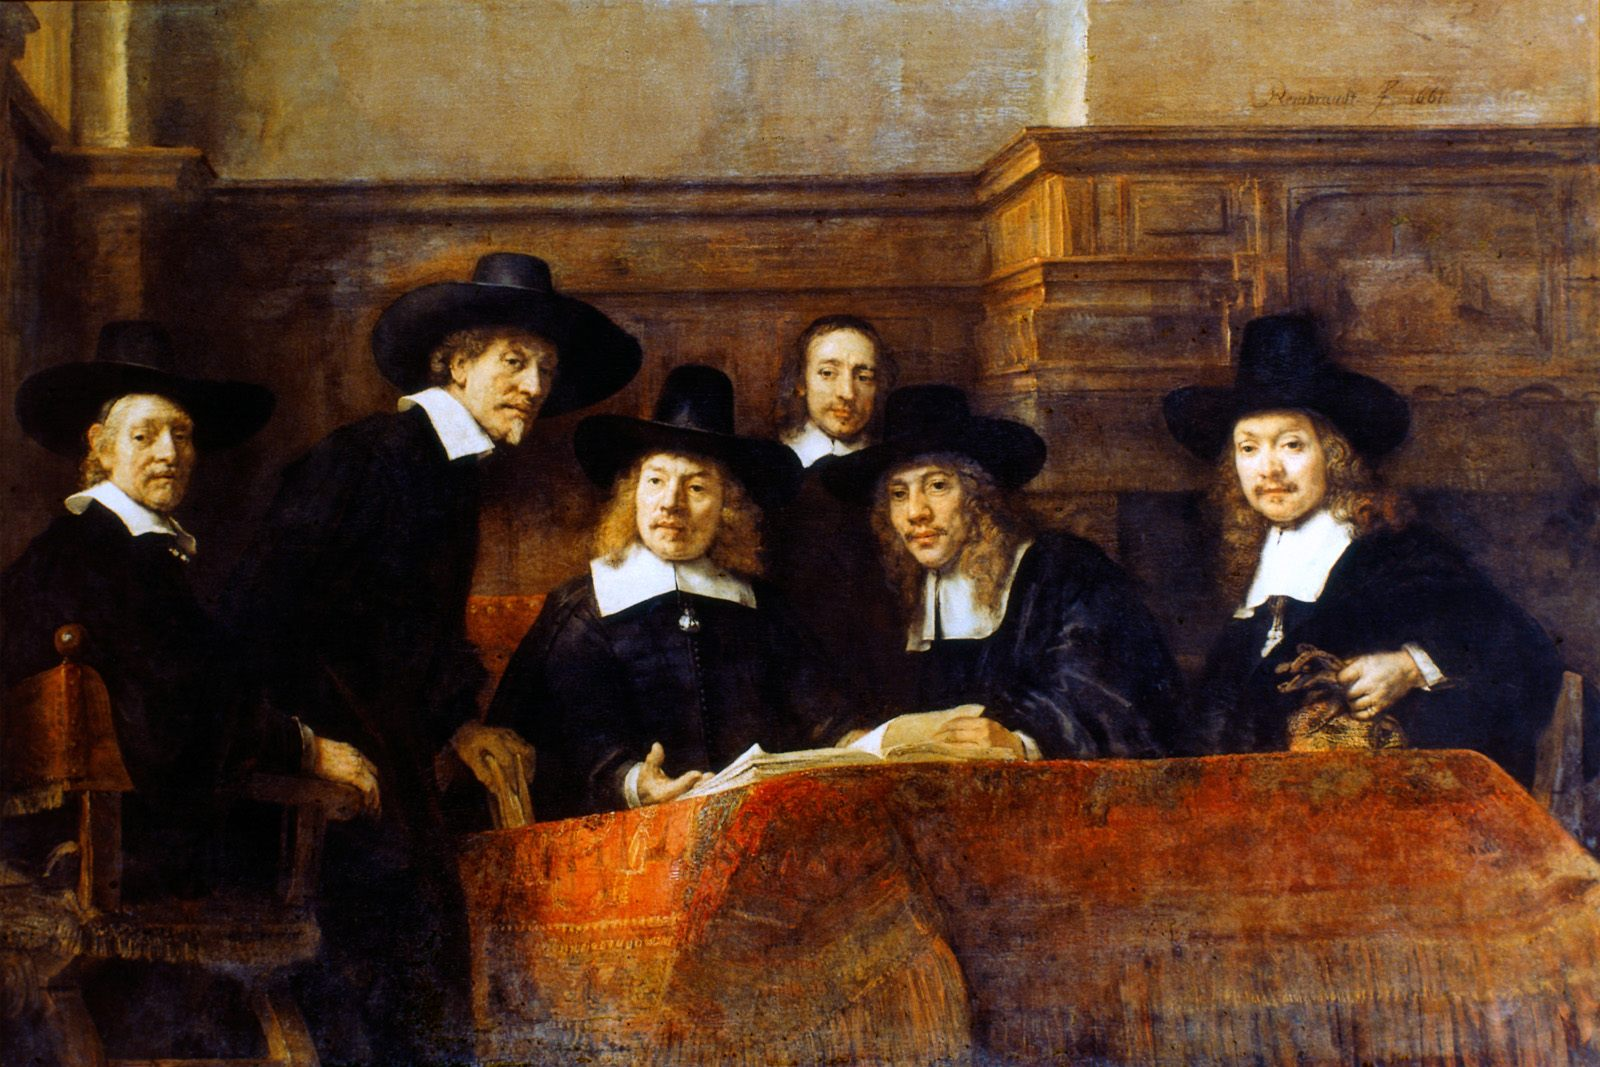 The syndics of the cloth guild rembrandt